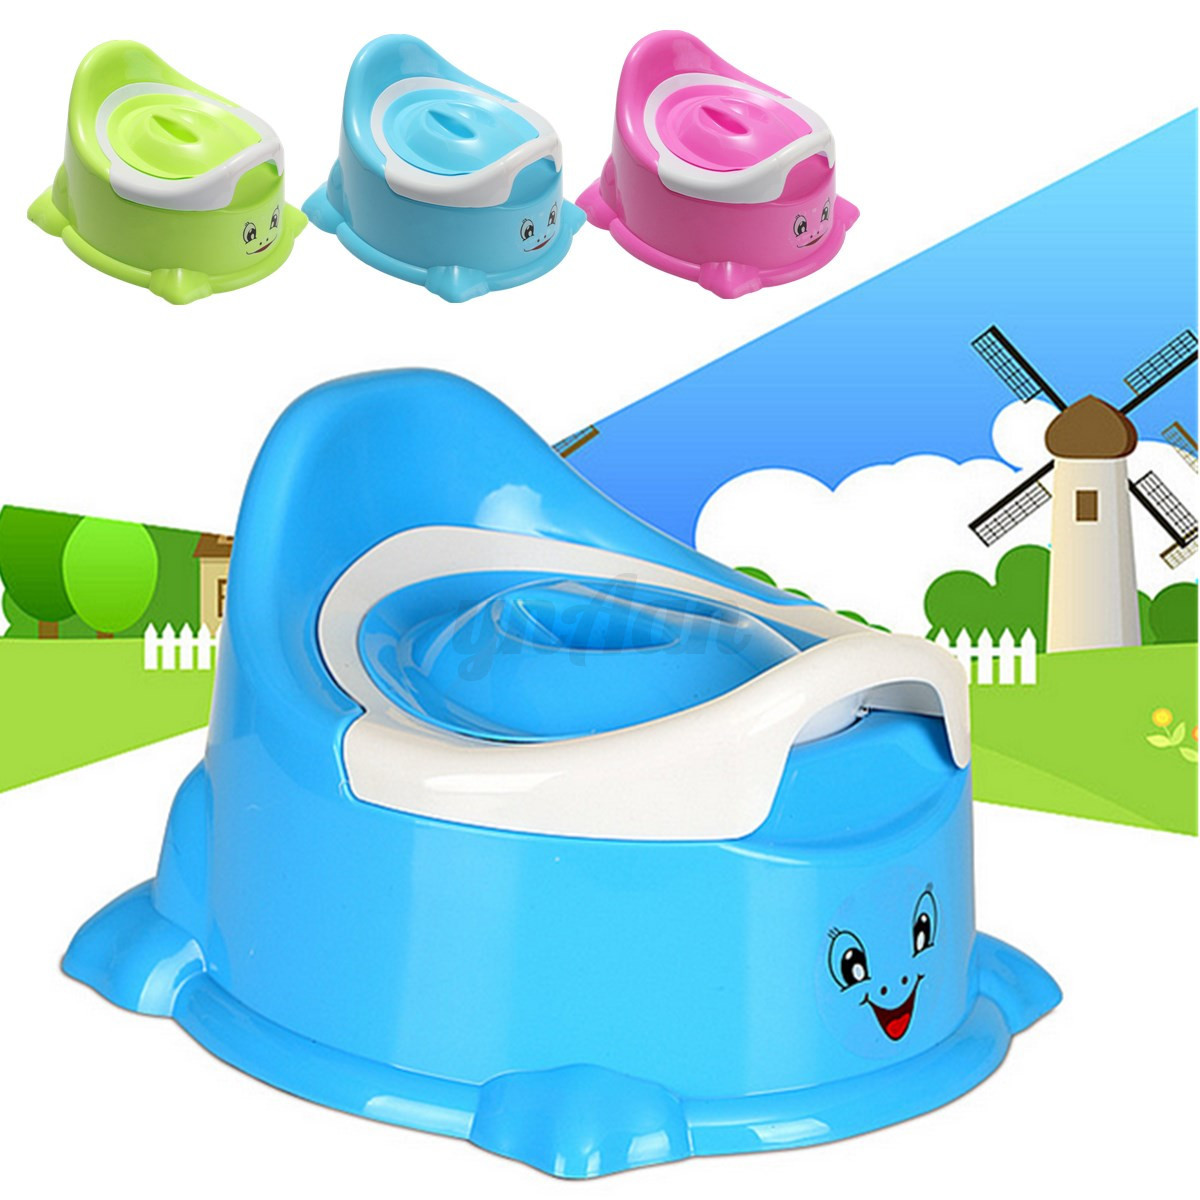 New Portable Cartoon Potty Toilet Chair Seat Baby Toddler